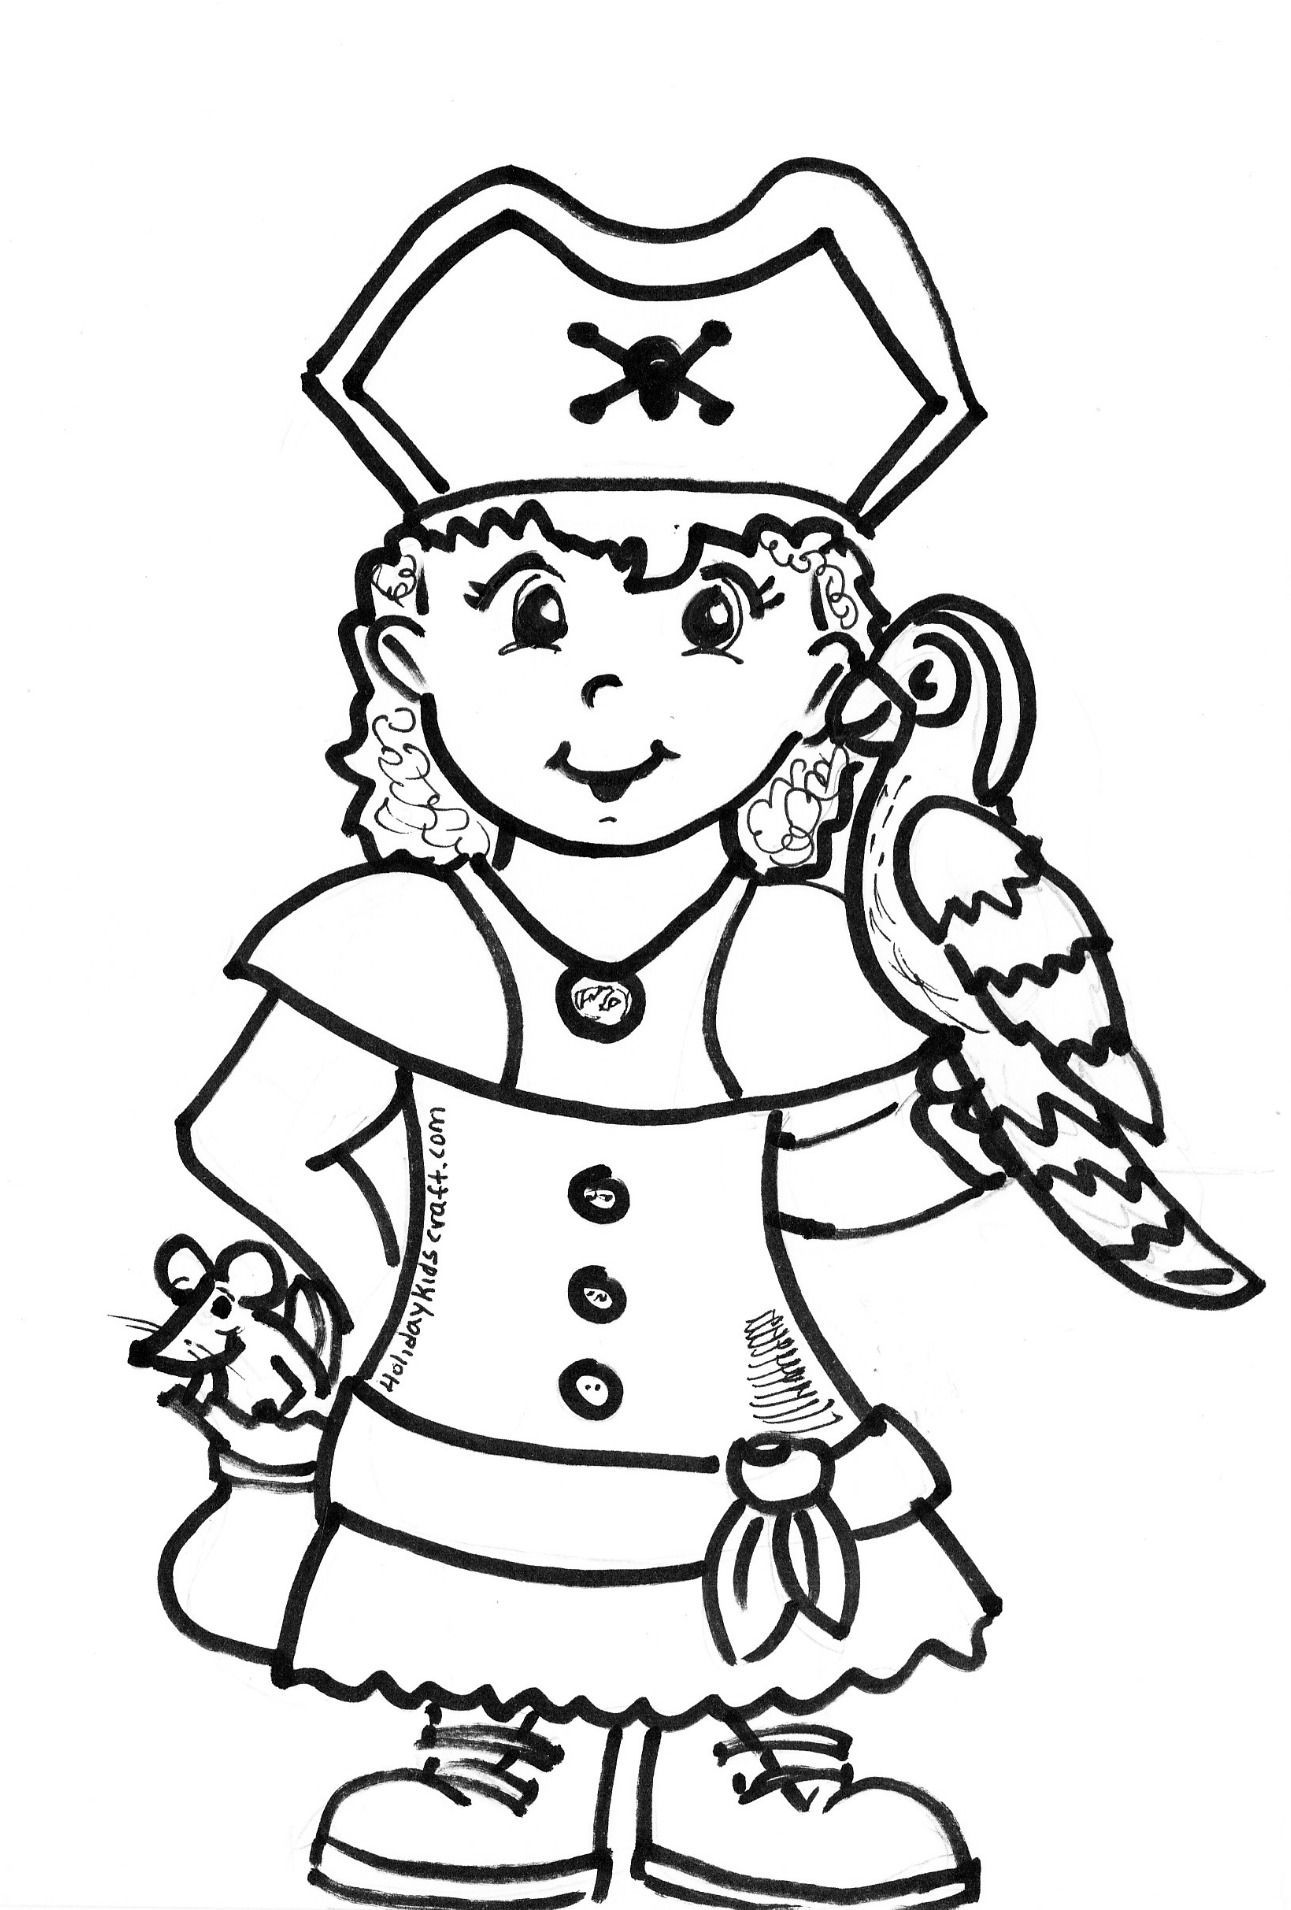 Girl pirate coloring page worksheets and coloring pages for Pirate coloring pages for preschool